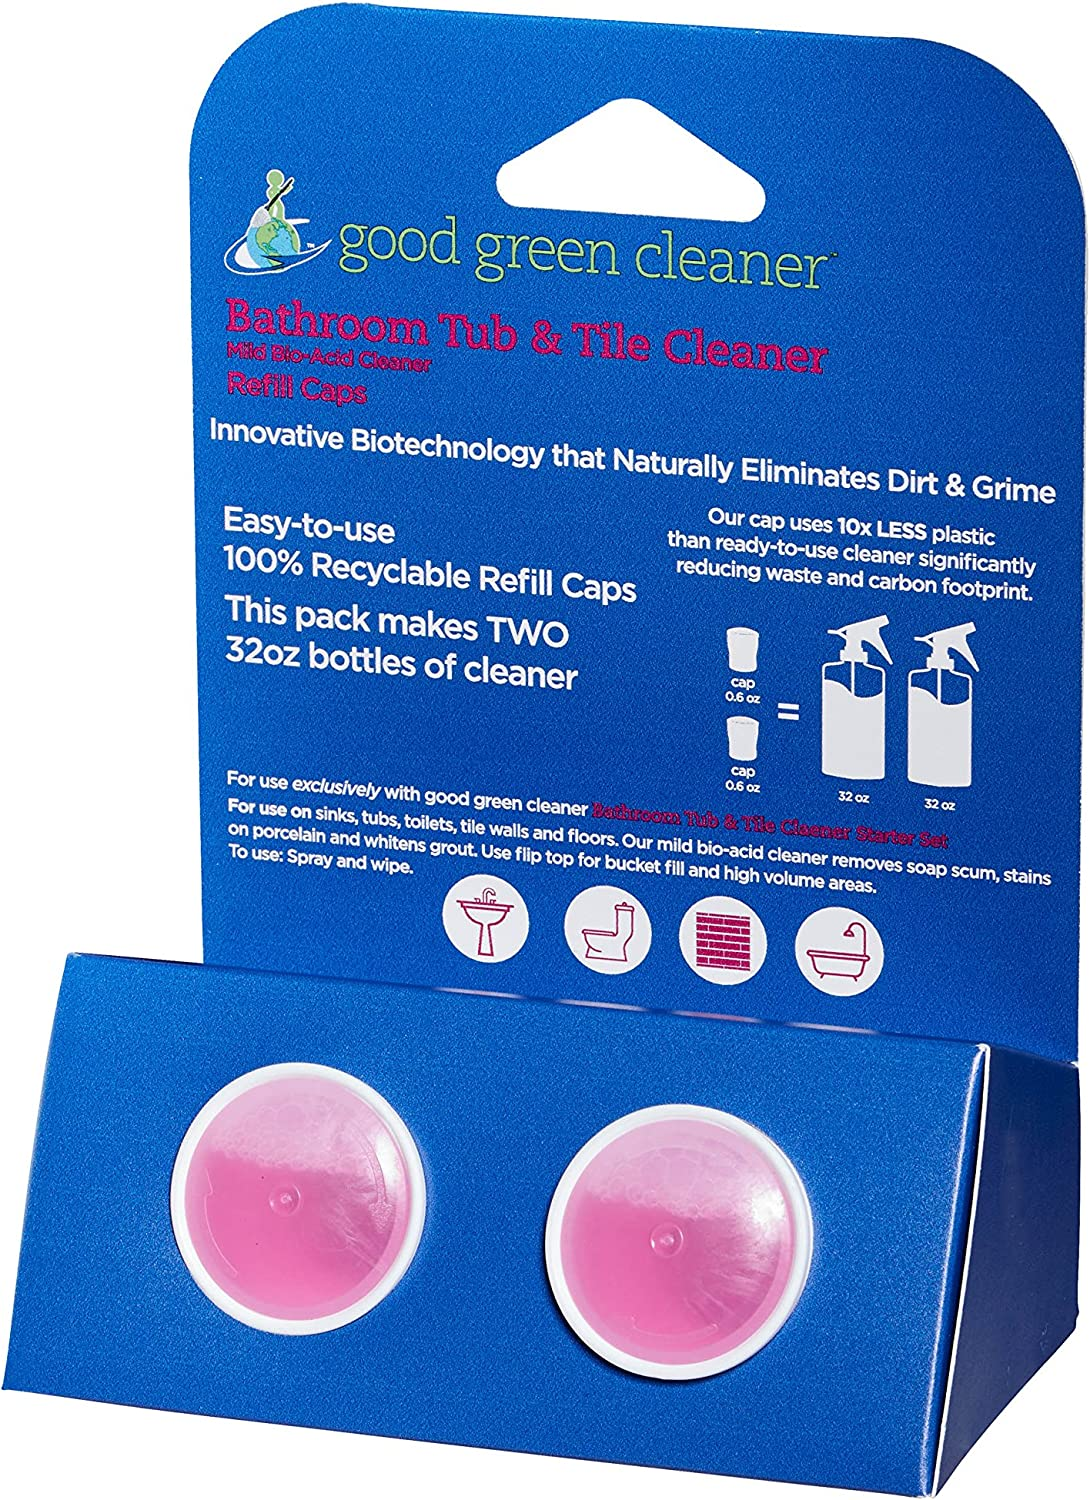 Good Green Cleaner Bathroom Tub & Tile Refill Set - 2 Recyclable PODs of Concentrate to Refill Your Starter Set. Makes 64 oz of Ready to Use Cleaner